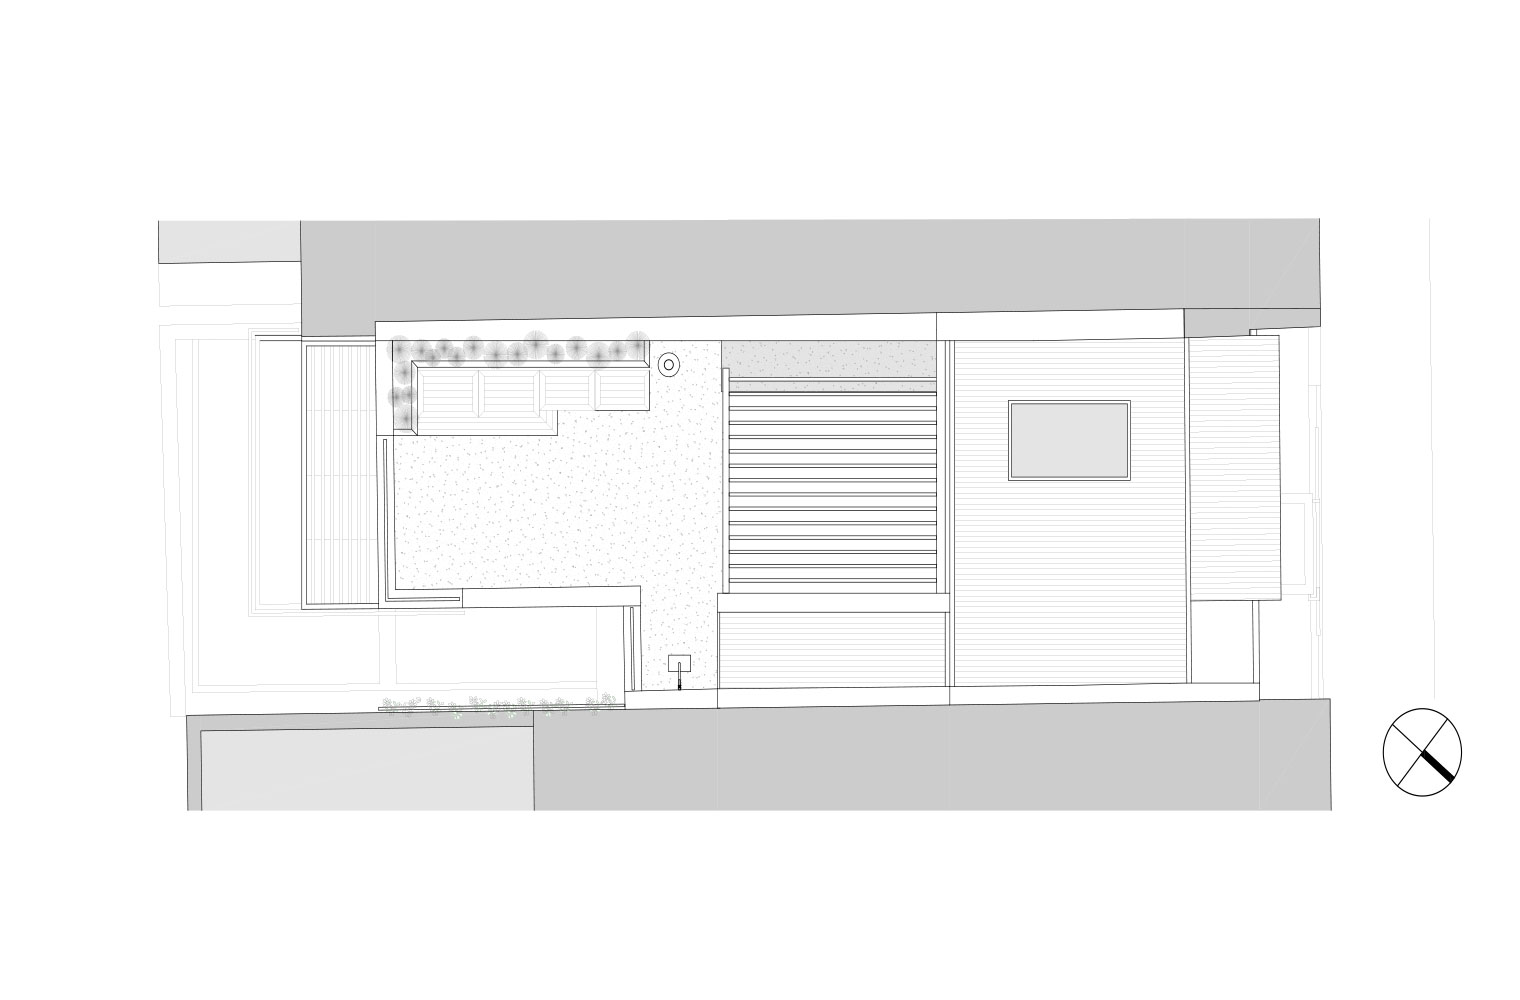 43 Lion Street - Site & Roof Plan